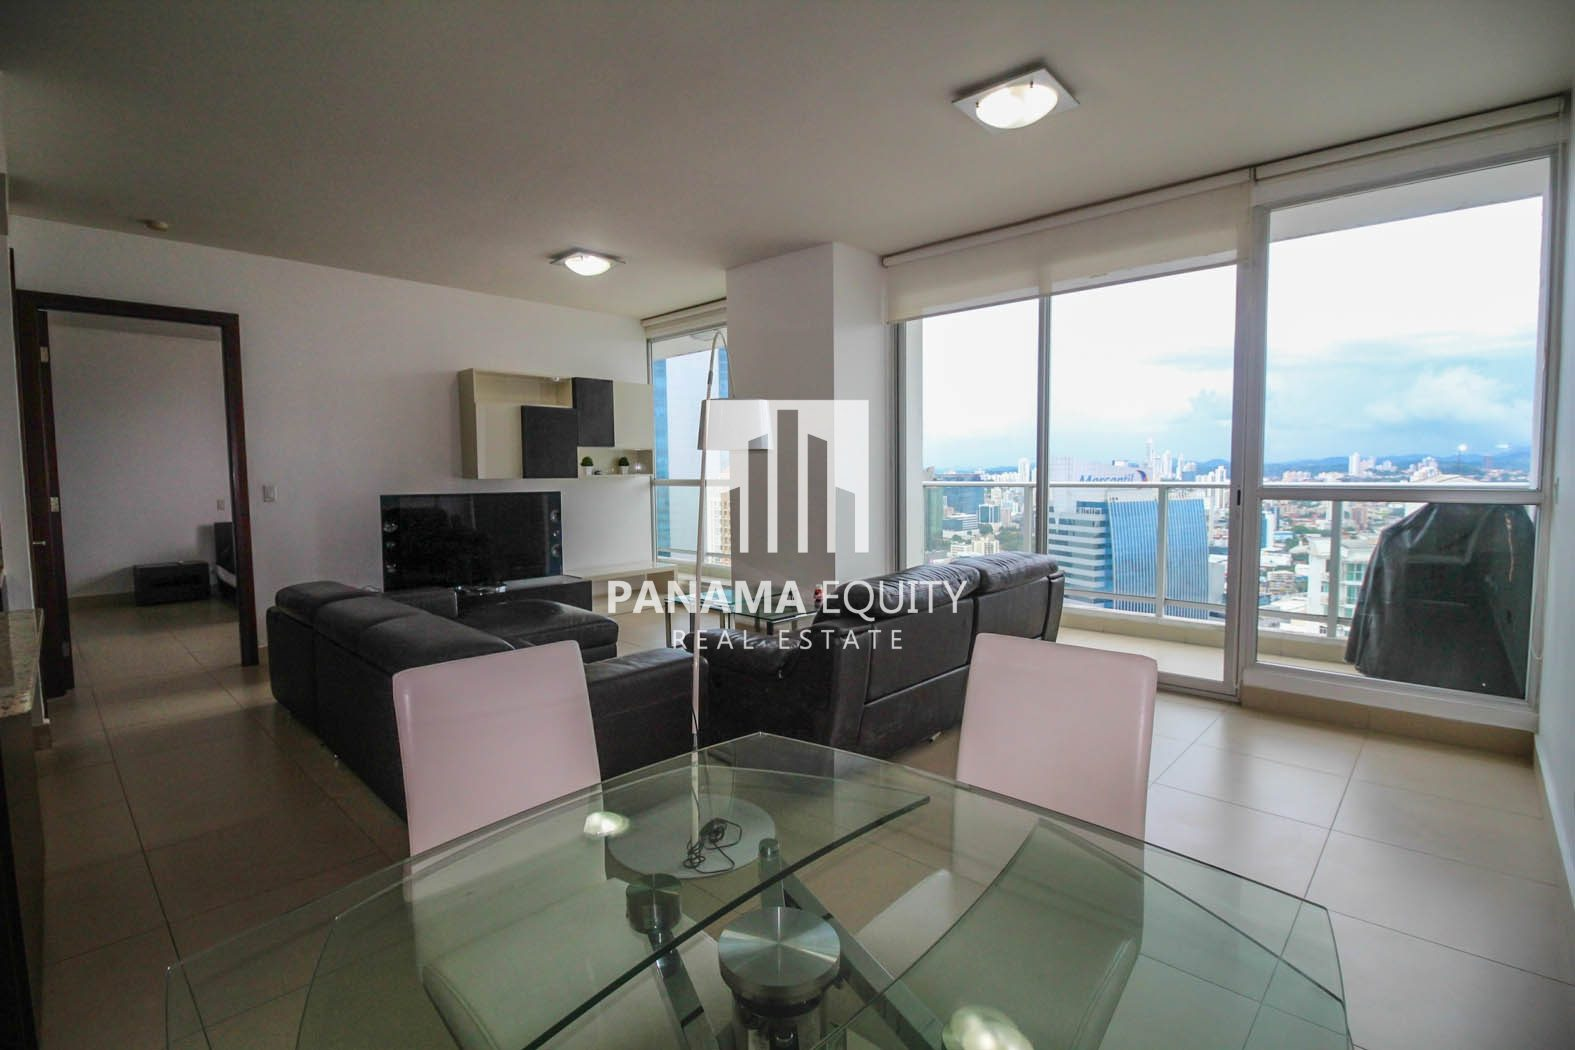 Fully Furnished Luxury Apartment With WOW Views In Punta Pacifica